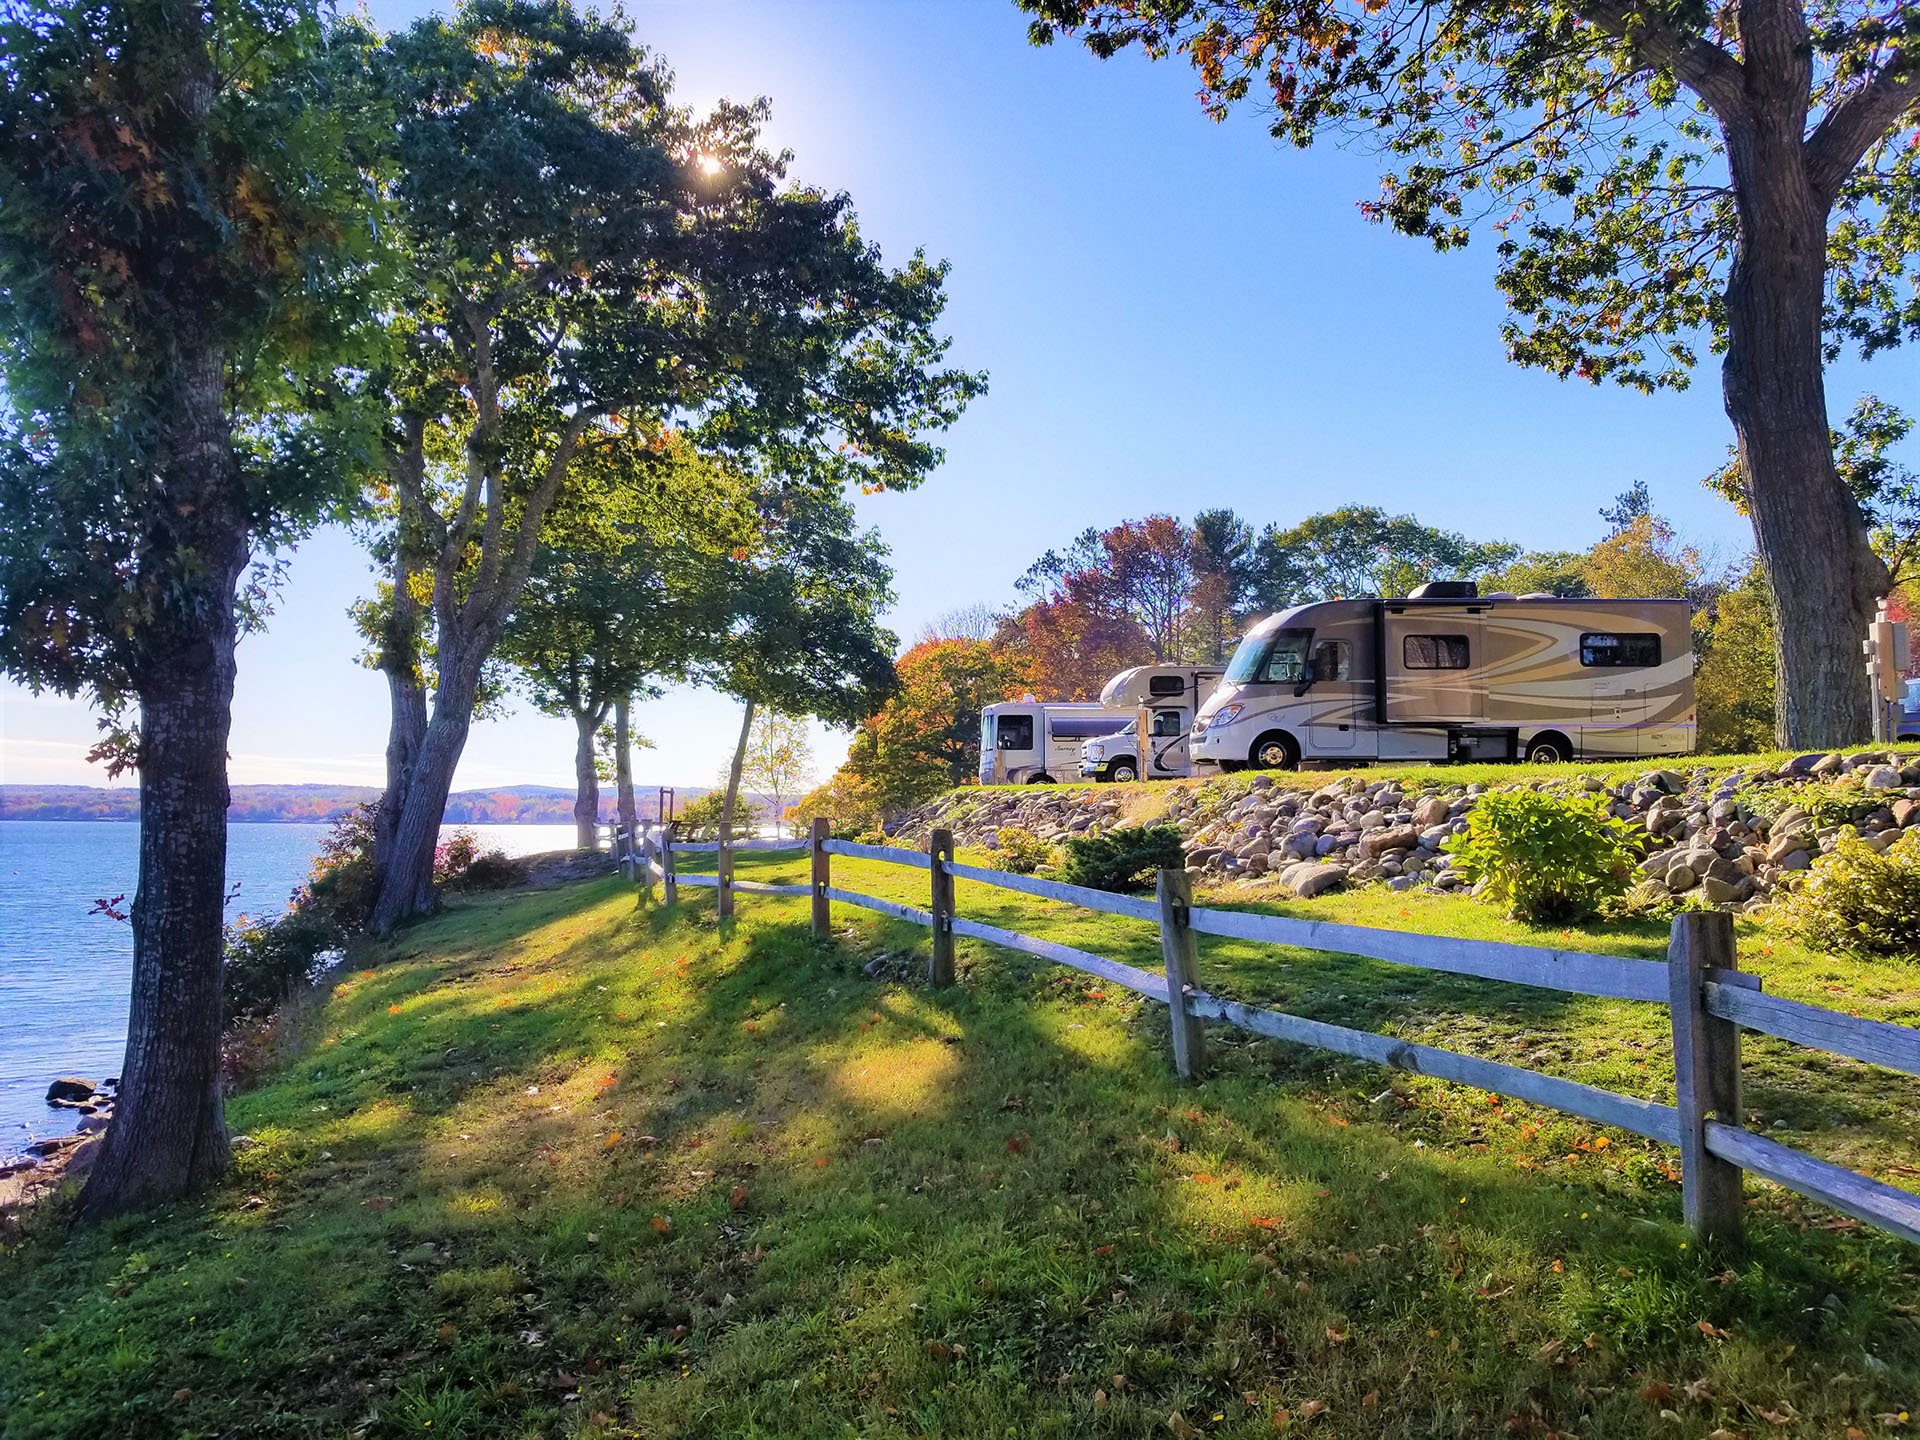 East coast rv trip, Top 10 Places to Visit on an East Coast RV Trip